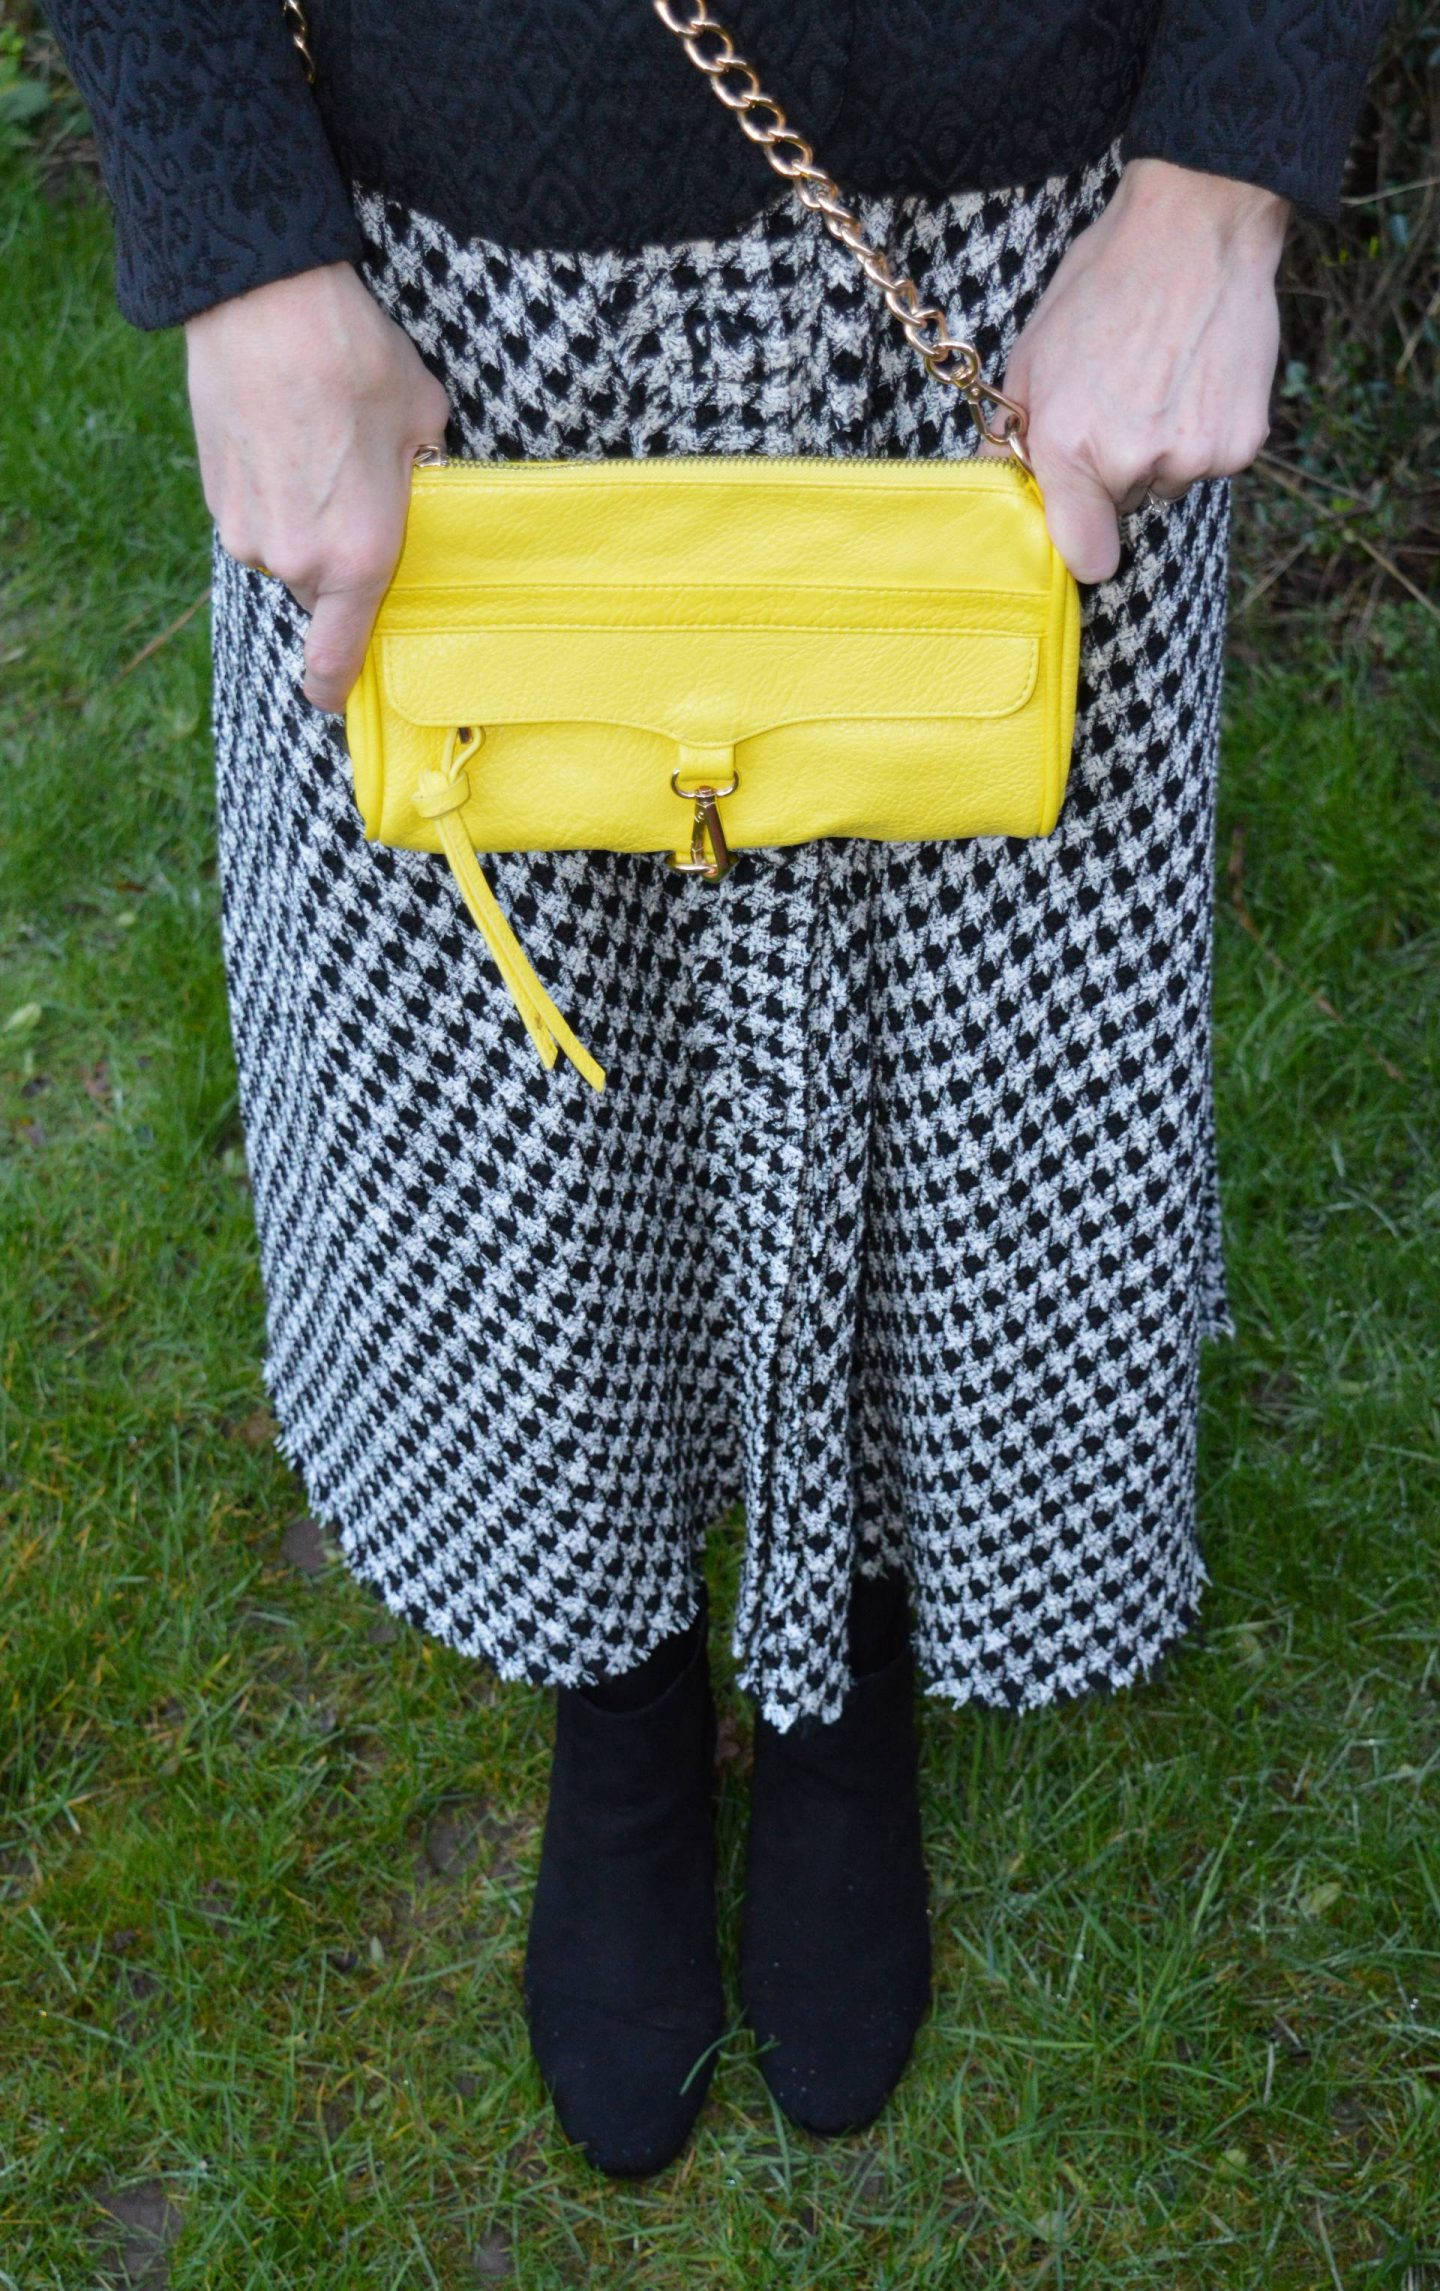 Zara black and white check skirt, bright yellow chain handle bag